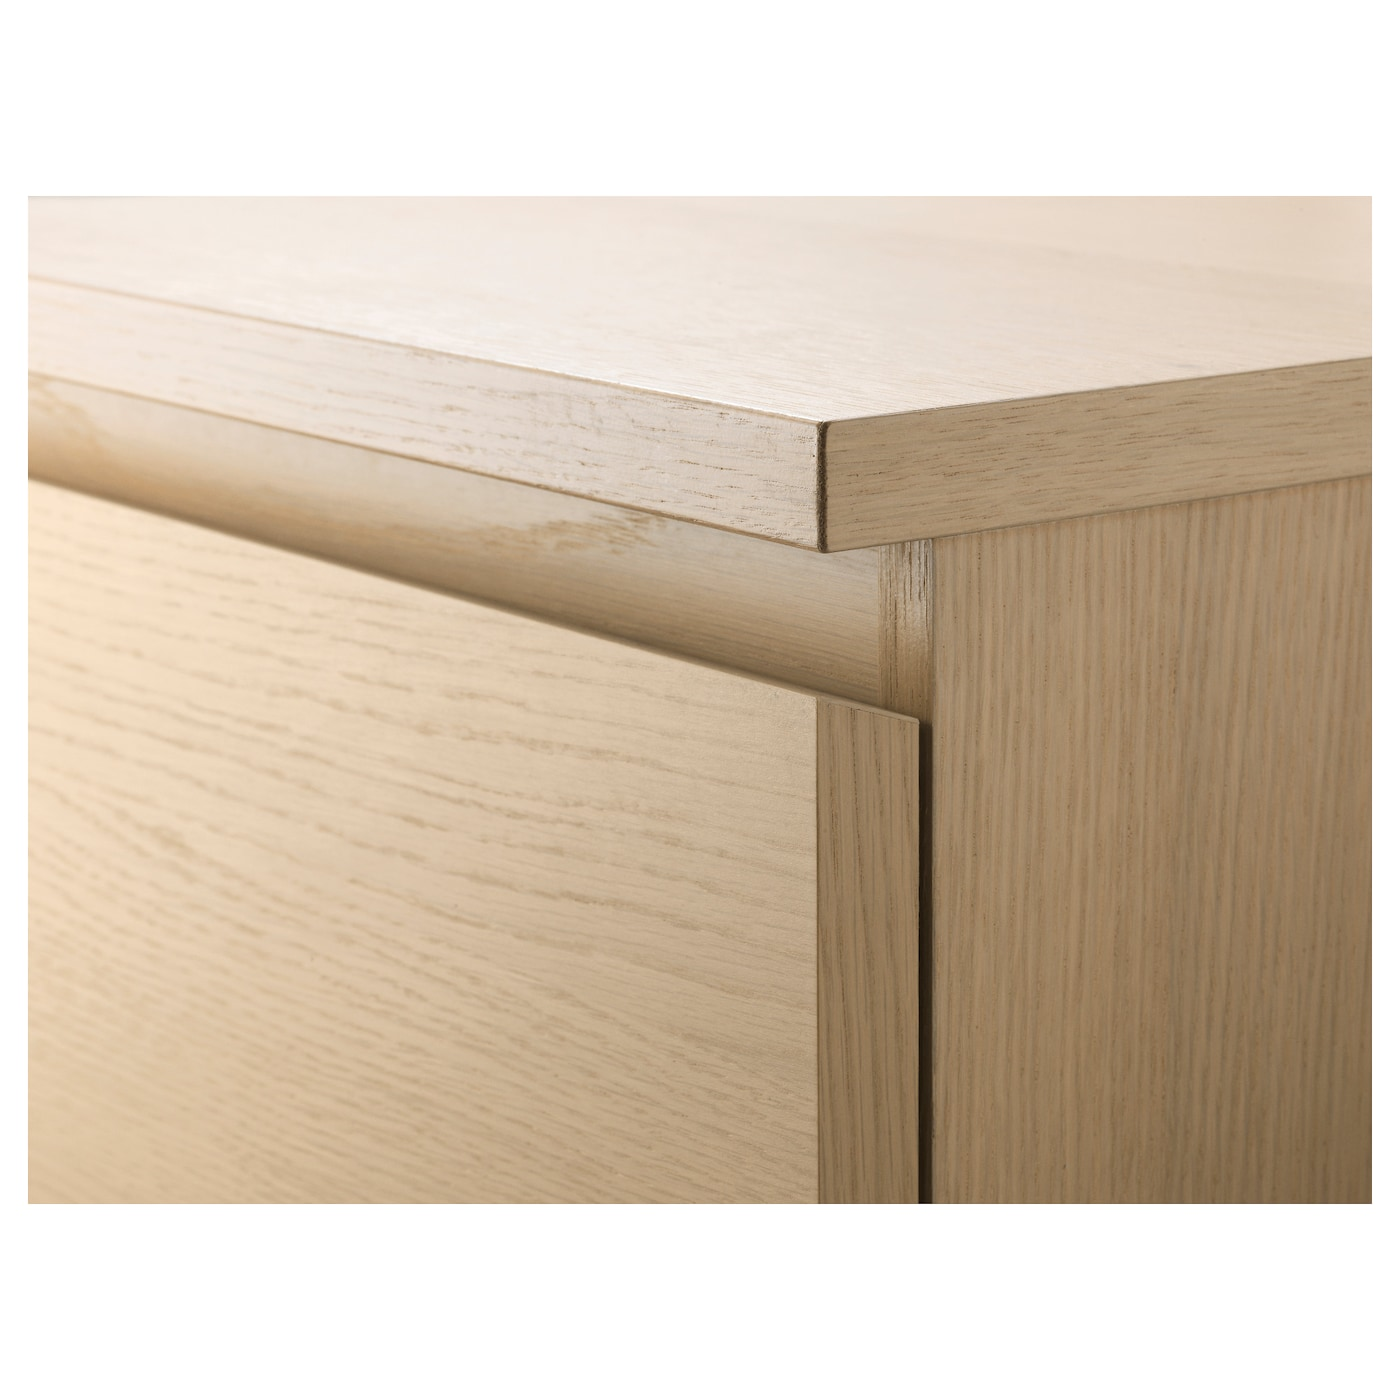 MALM Chest of 6 drawers, white stained oak veneer, 80x123 cm